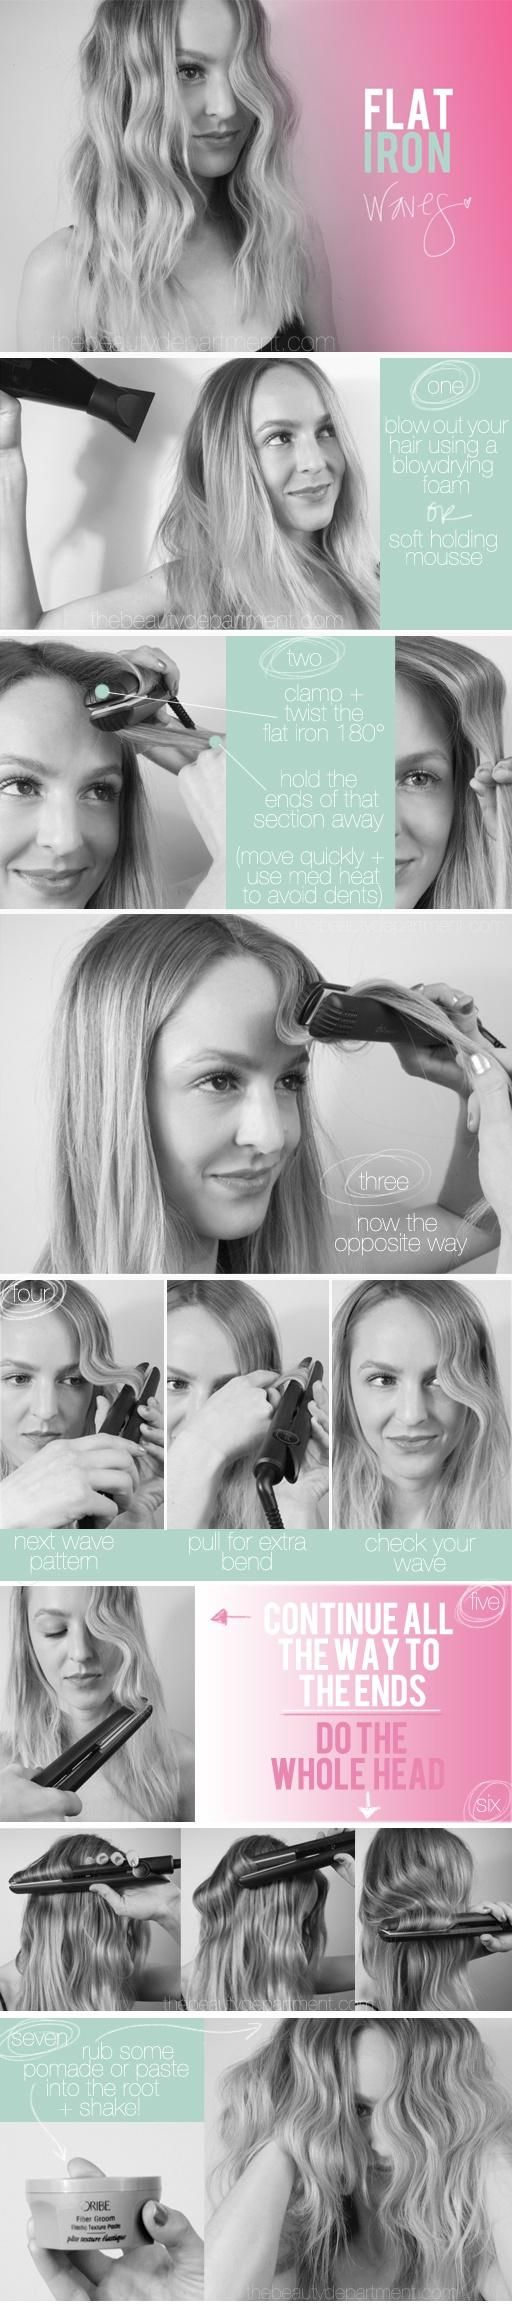 Beach babe wavy hair tutorial easy ways to get carefree waves